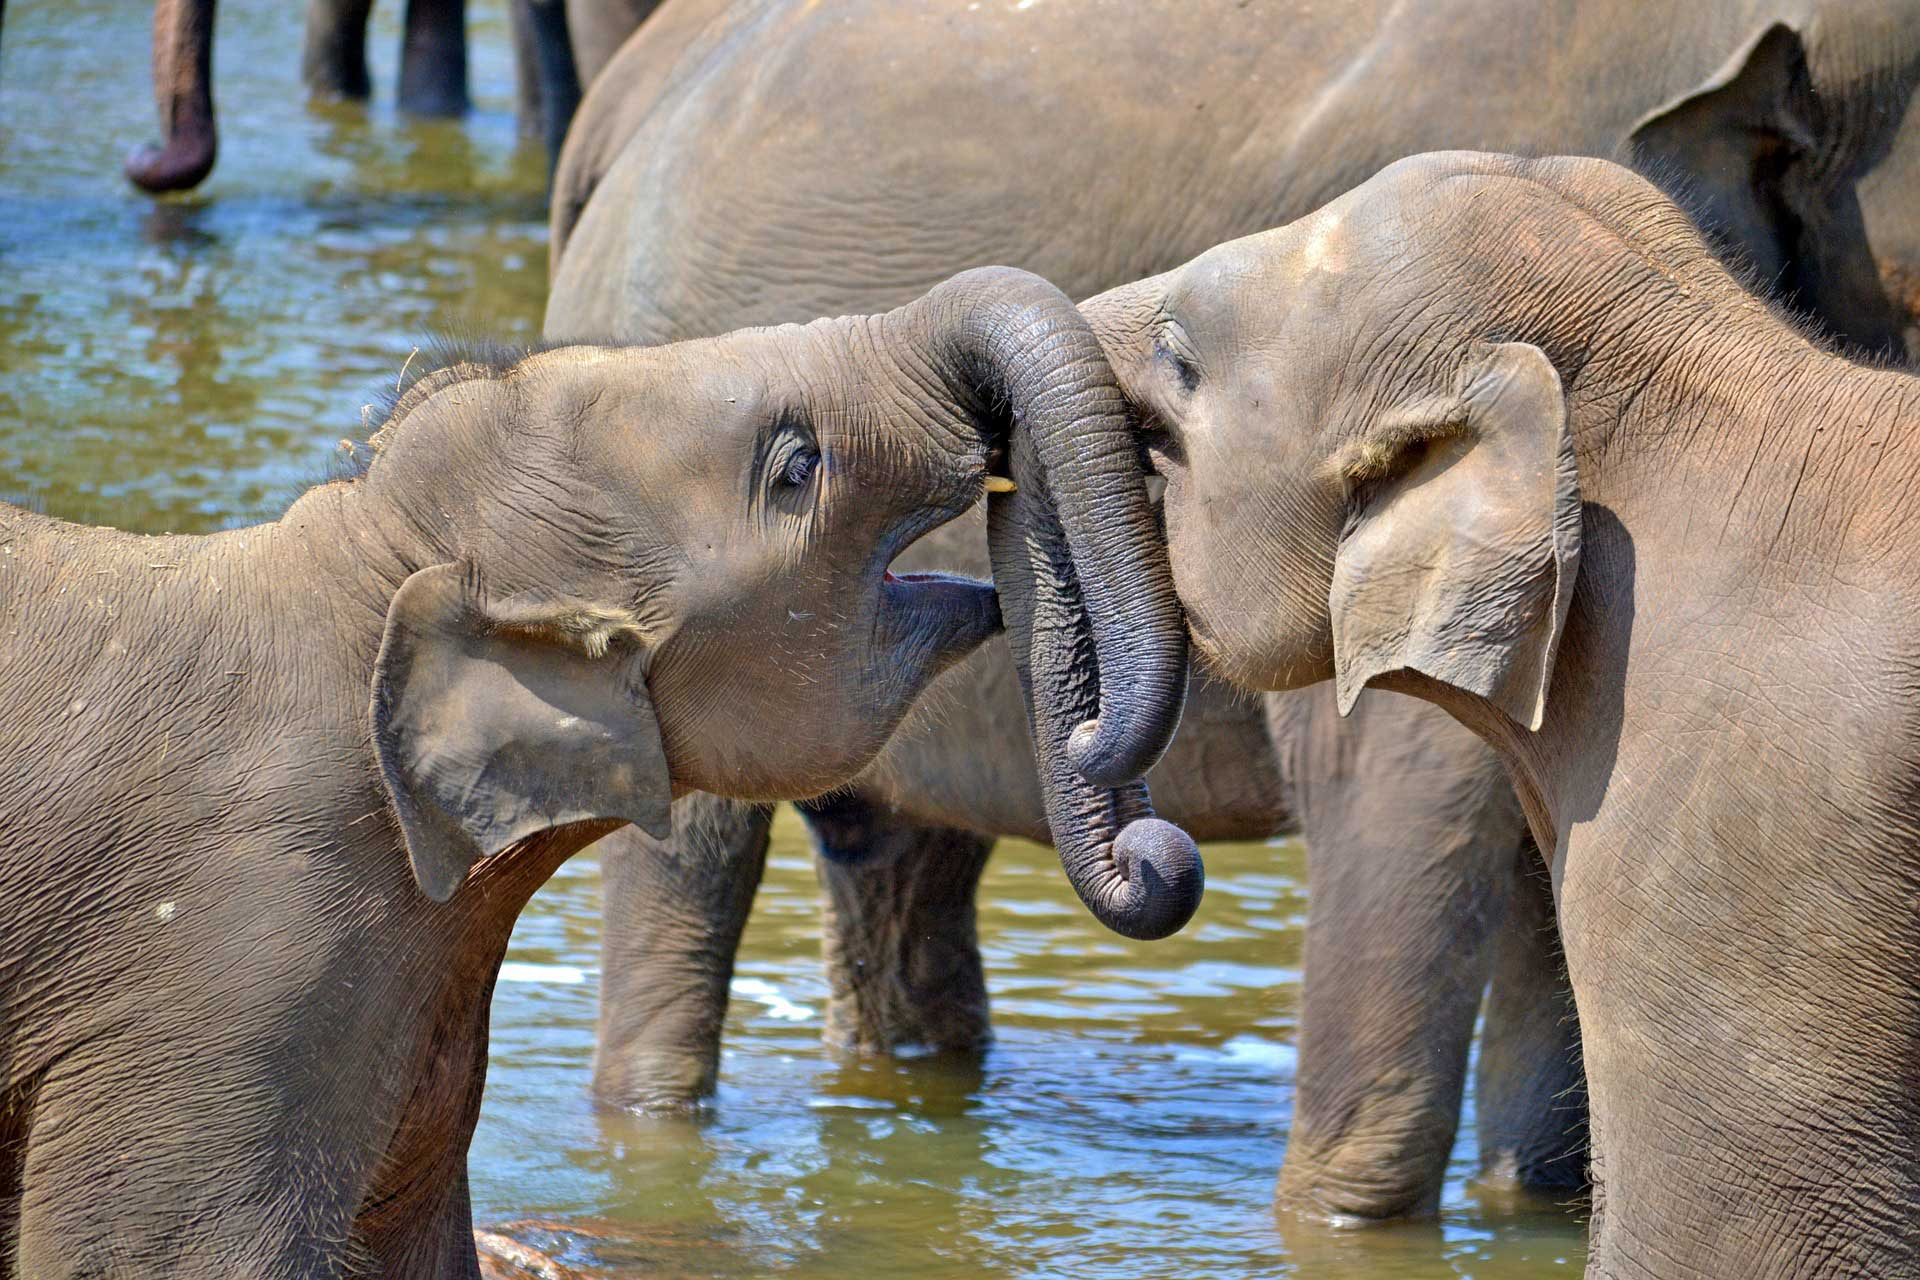 Sri Lanka Tours and Private Driver - Visit - Elephants at Pinnawalla